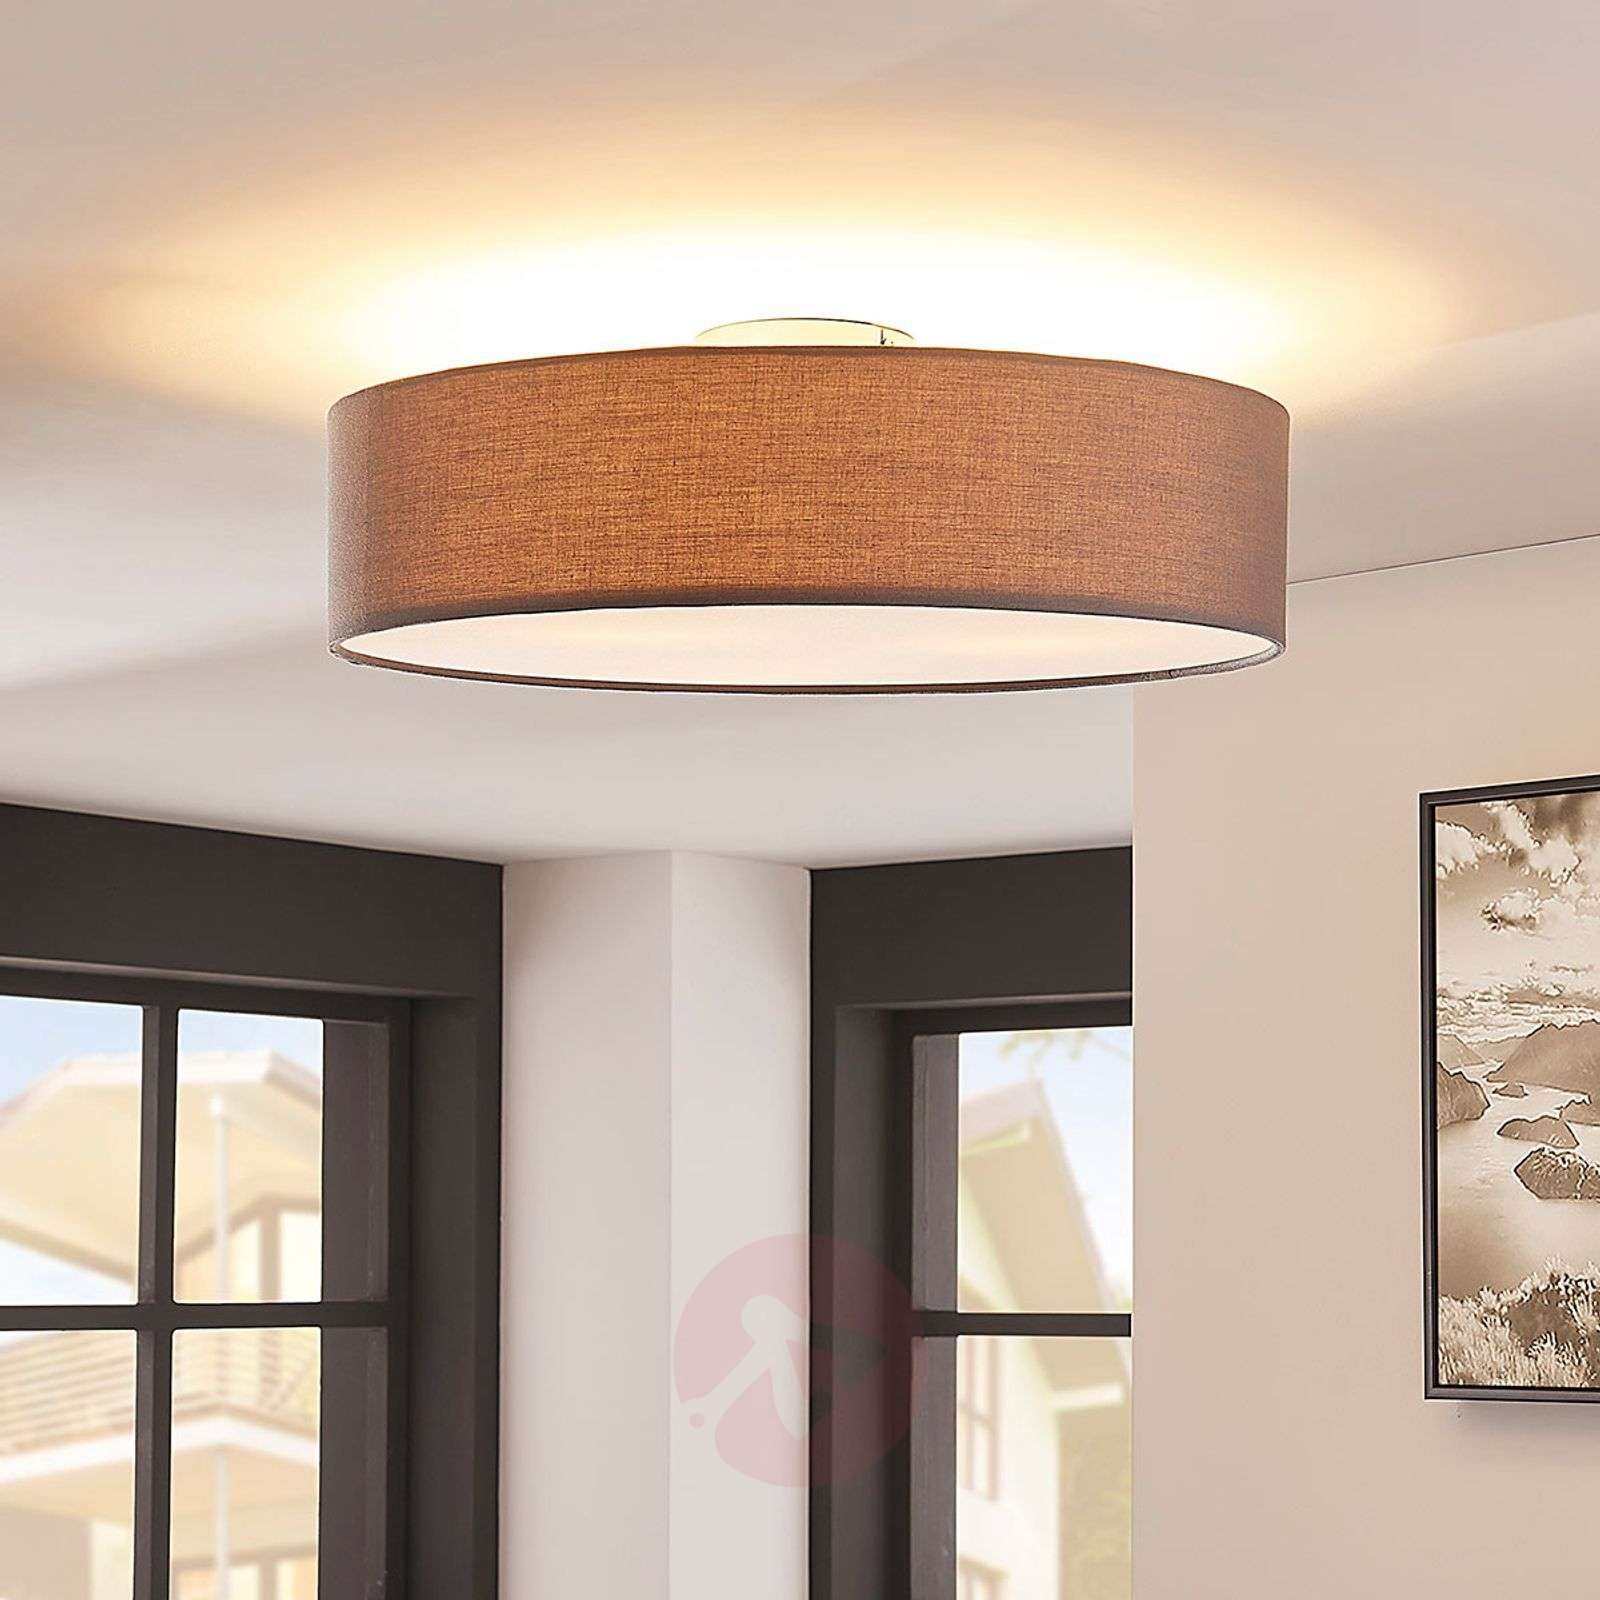 Grey LED fabric ceiling light Sebatin-9620330-02